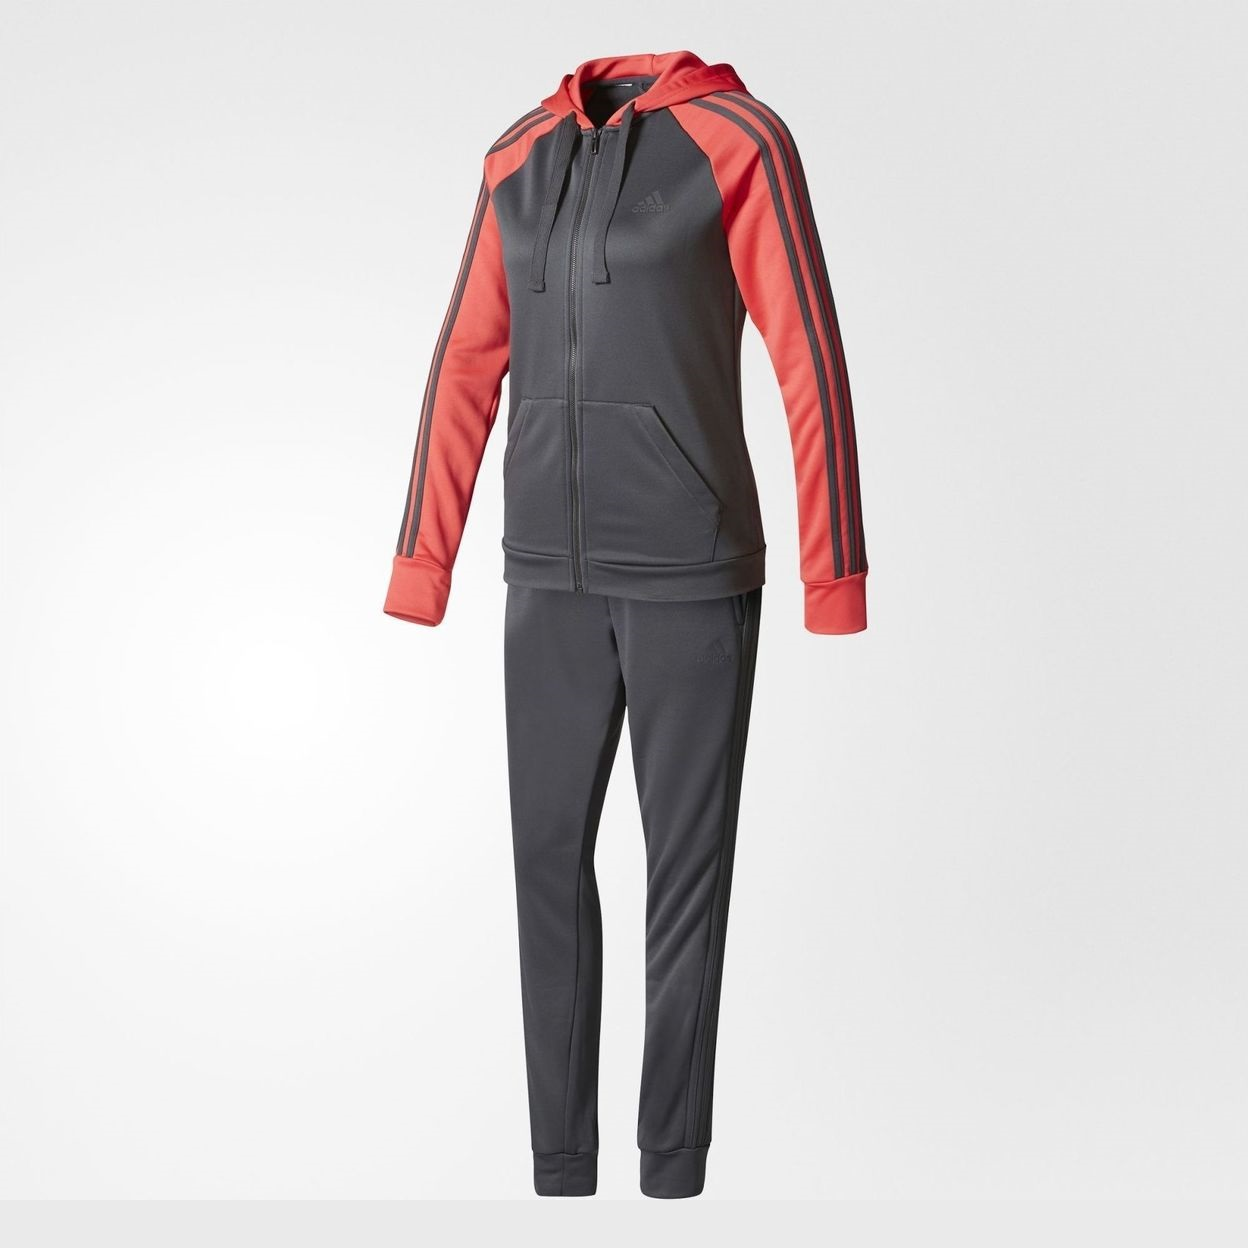 Adidas Re-Focus Track Suit BK4688 1